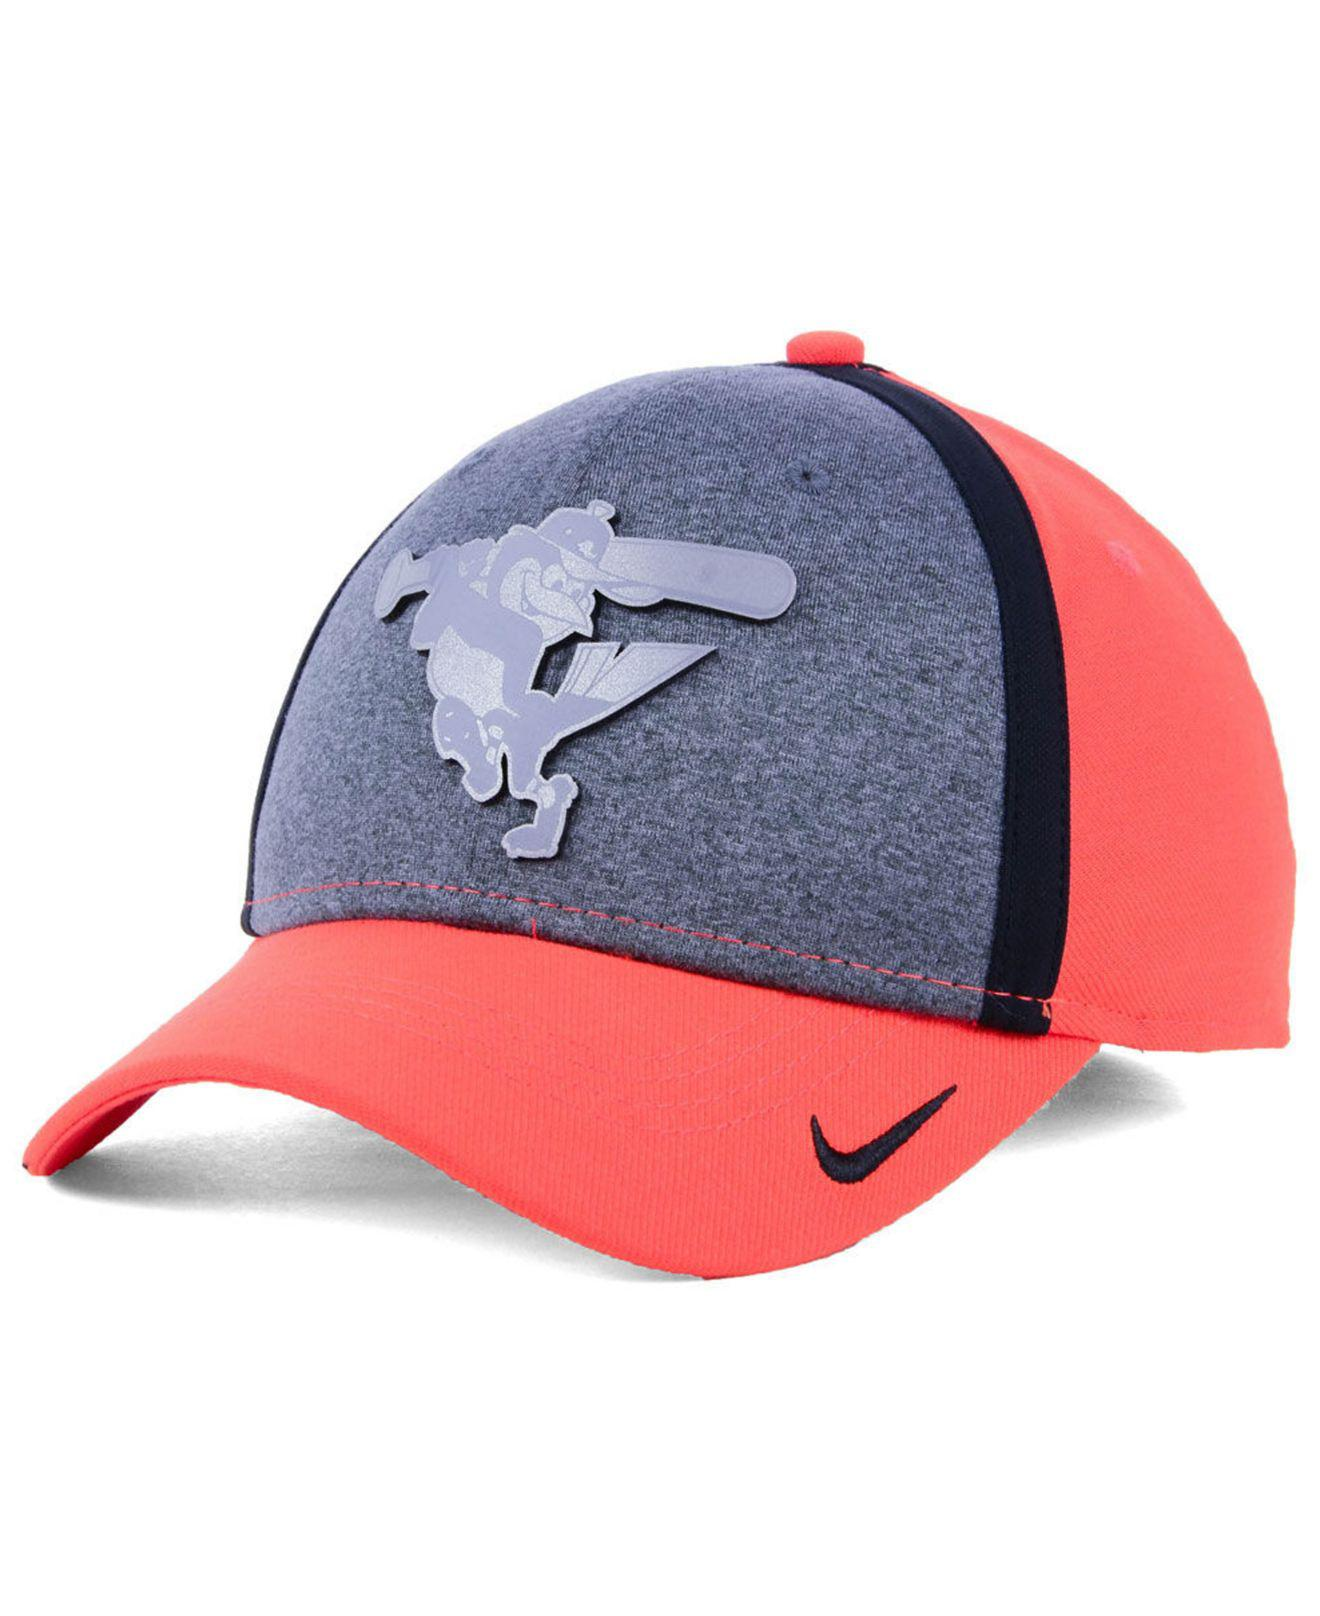 0e0611f833252 Lyst - Nike Baltimore Orioles Team Color Reflective Swooshflex Cap ...